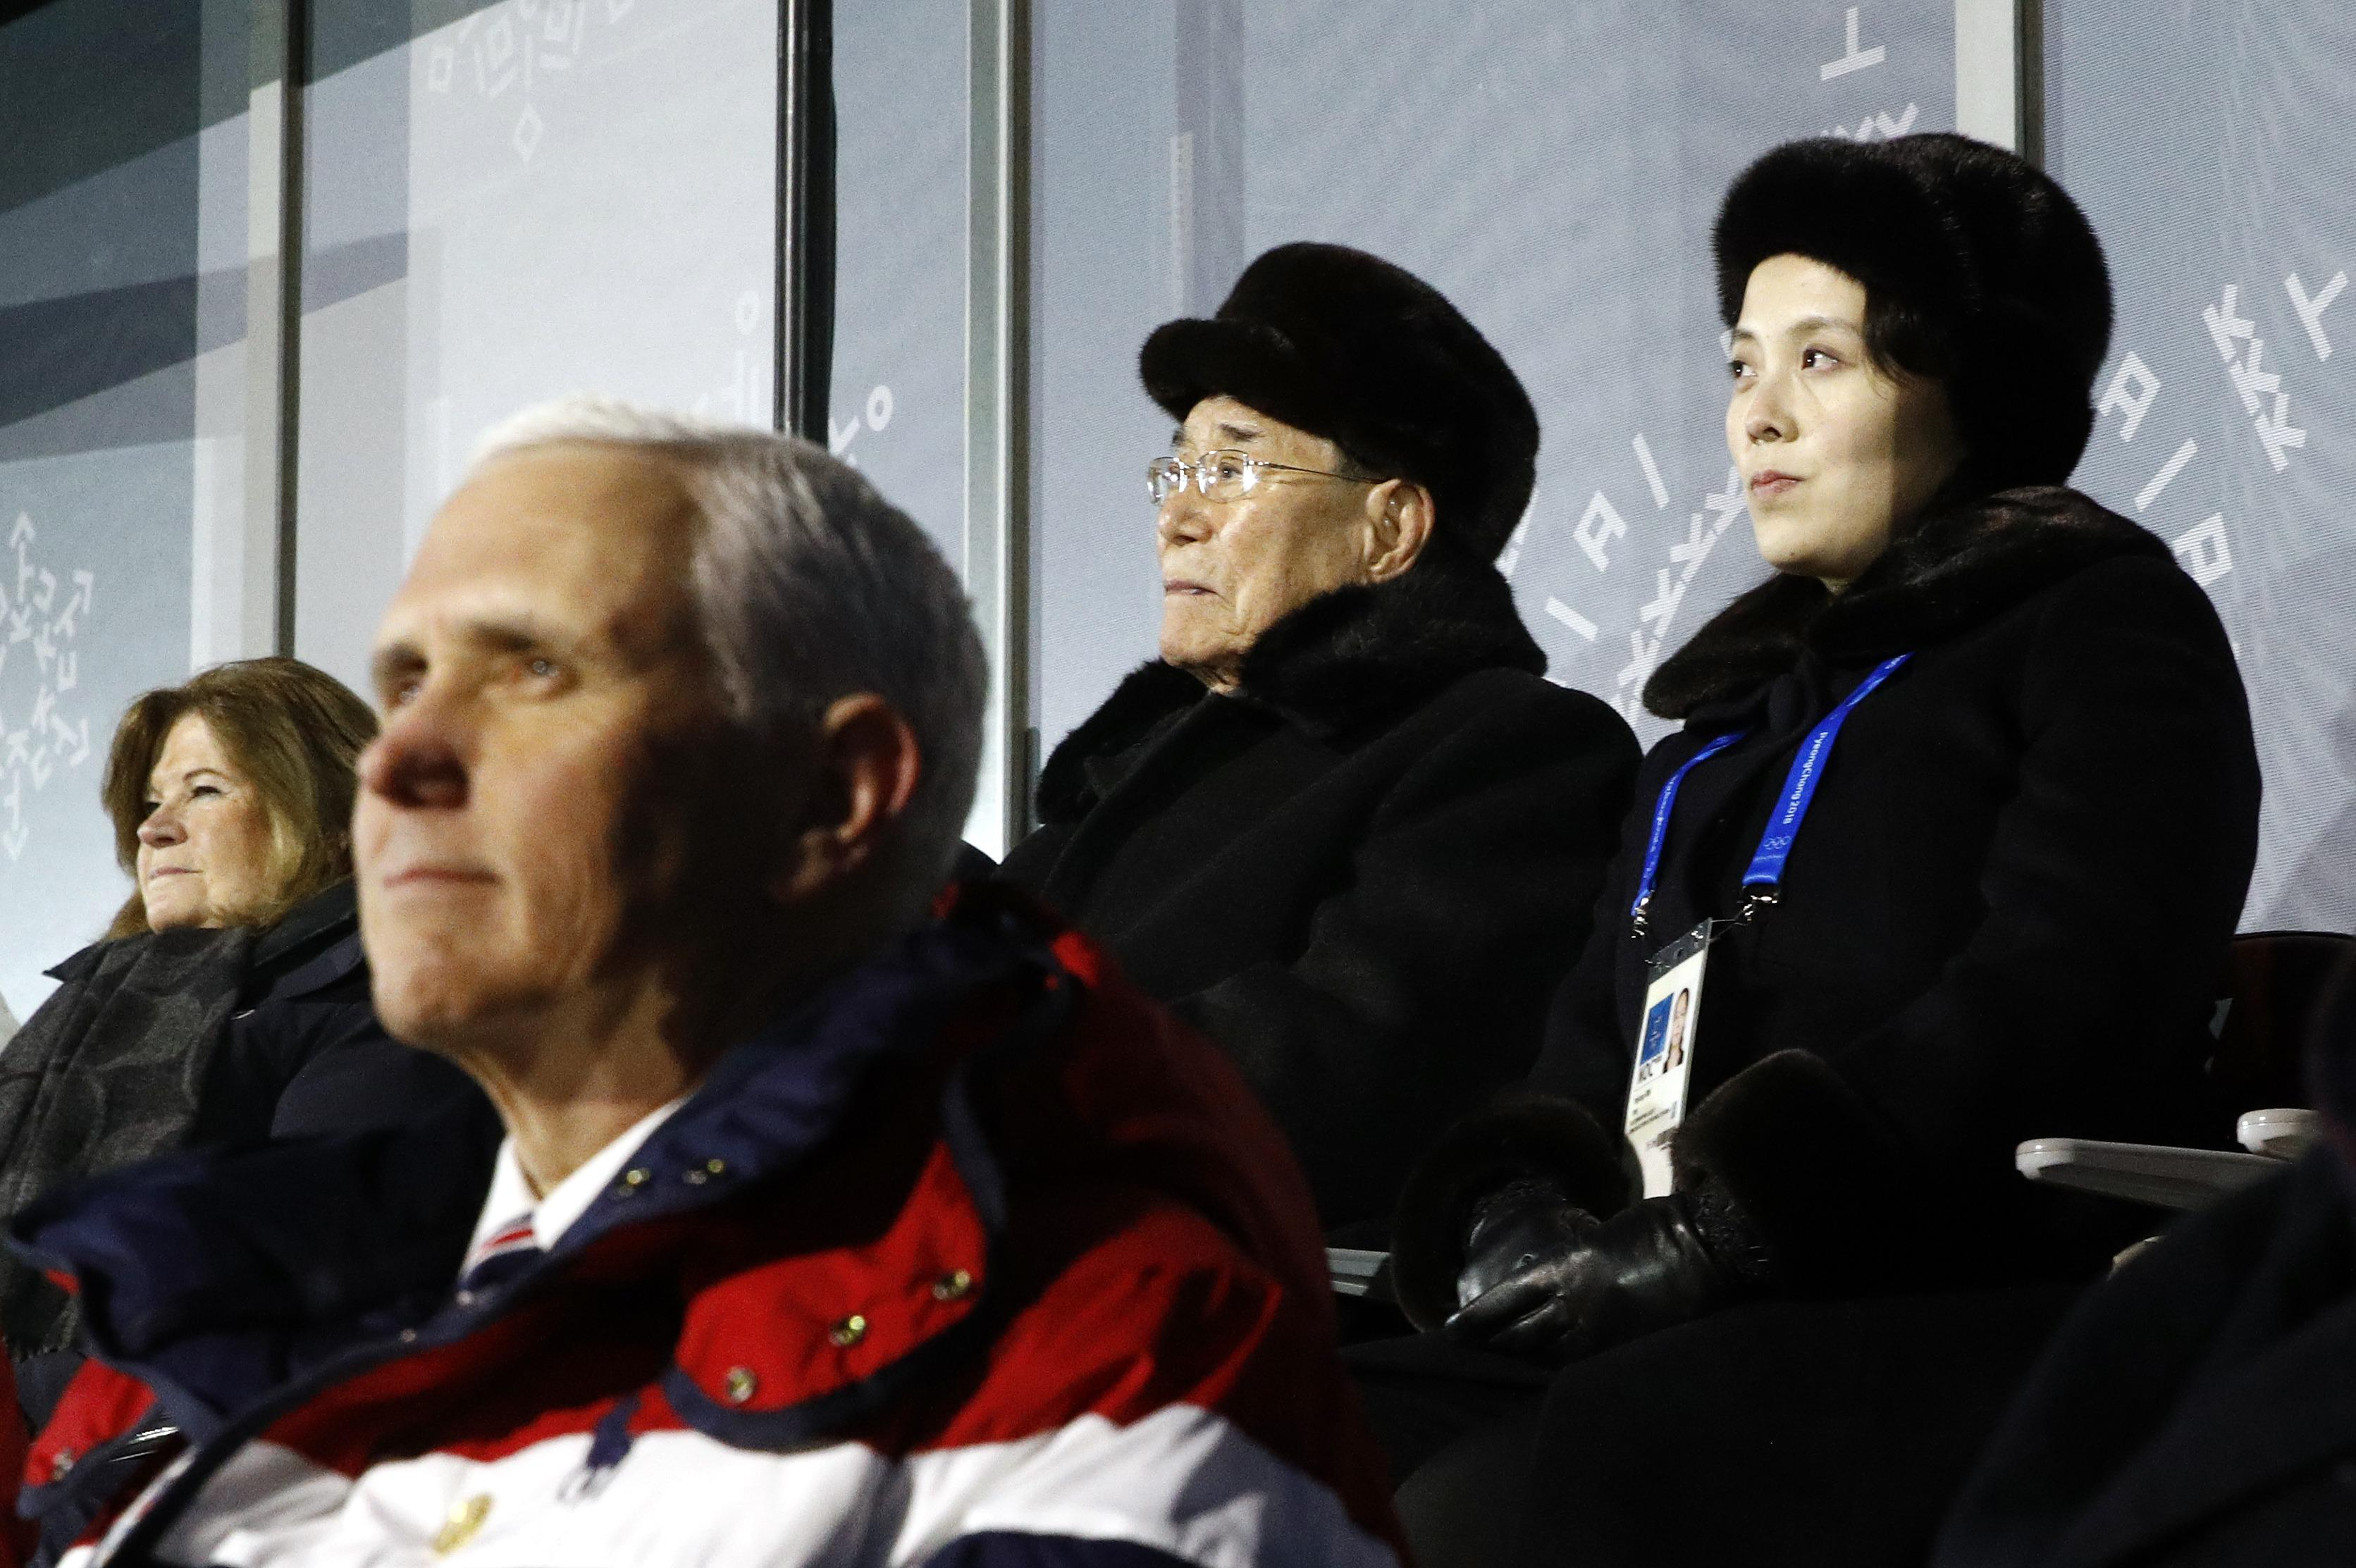 PYEONGCHANG-GUN, SOUTH KOREA - FEBRUARY 09:  Kim Yo Jong, top right, sister of North Korean leader Kim Jong Un, sits alongside Kim Yong Nam, president of the Presidium of North Korean Parliament, and behind U.S. Vice President Mike Pence as she watches the opening ceremony of the 2018 Winter Olympics at PyeongChang Olympic Stadium on February 9, 2018 in Pyeongchang-gun, South Korea.  (Photo by Patrick Semansky - Pool /Getty Images)